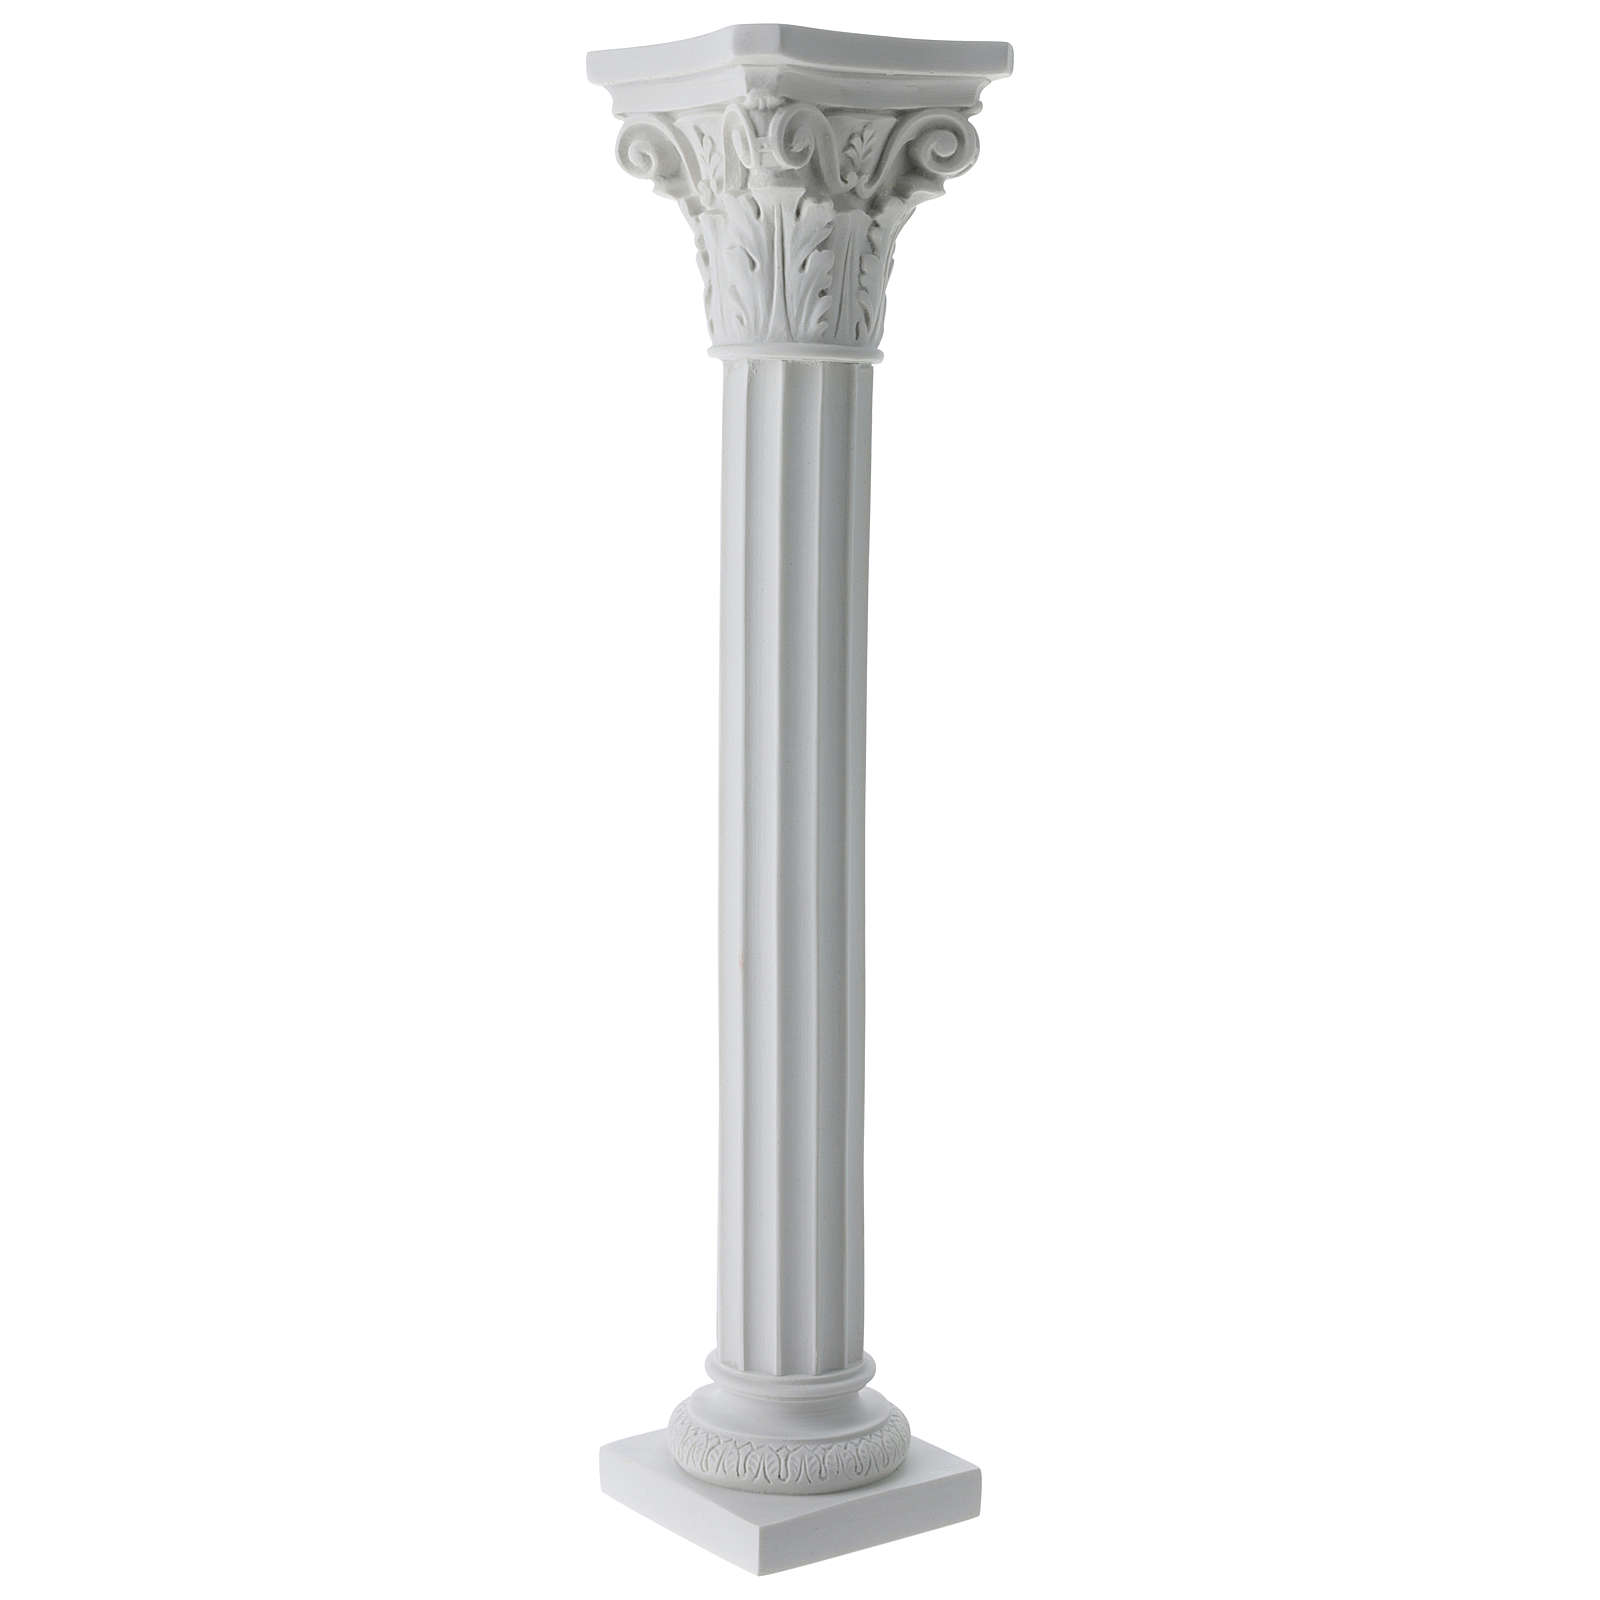 Column for statues in full relief, reconstituted Carrara marble 4